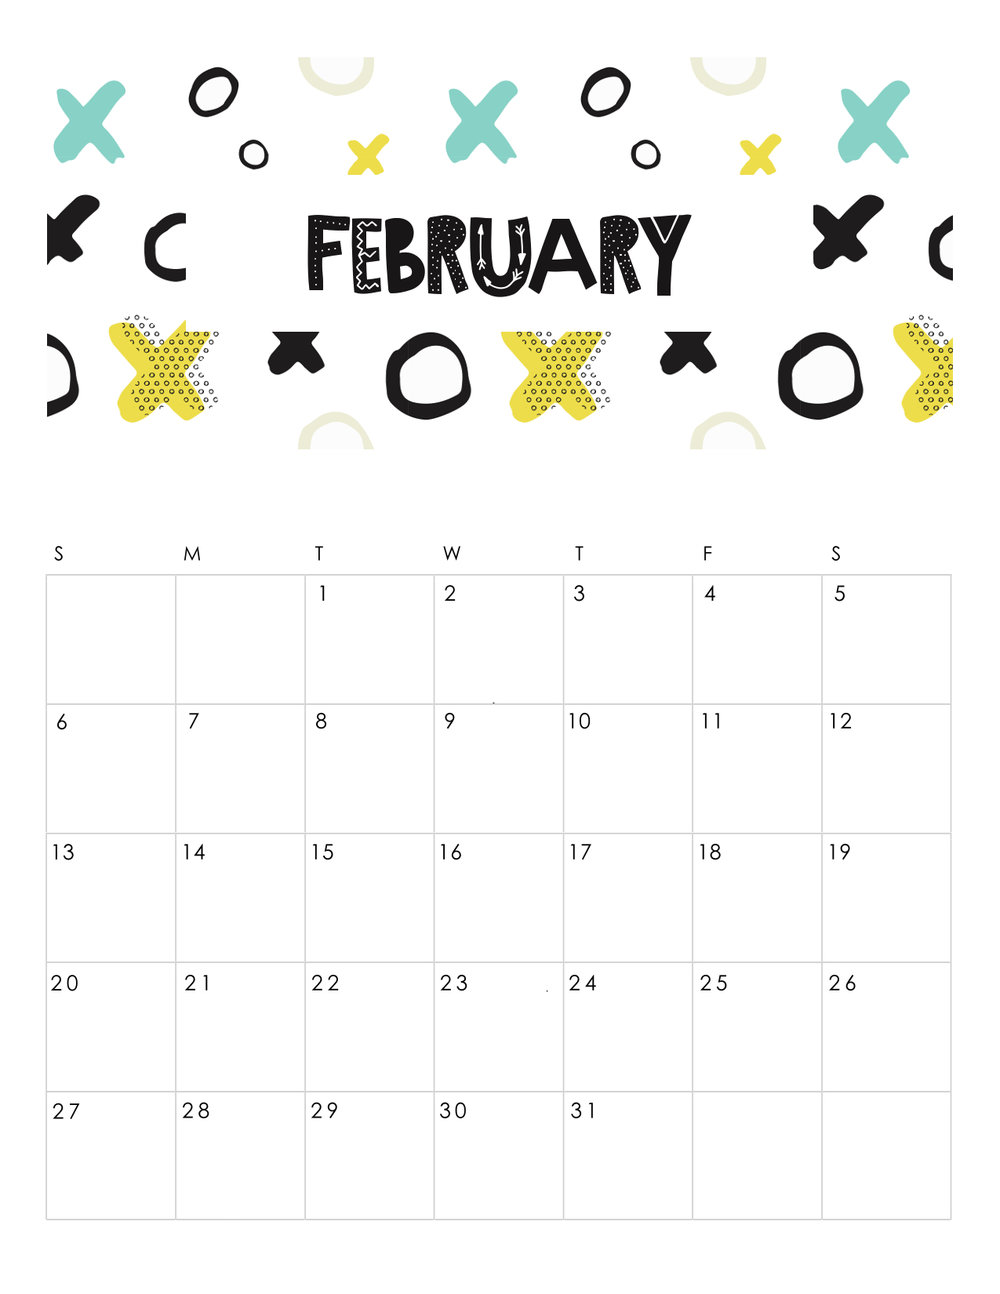 free-printable-abstract-patterned-calendar-february-2019.jpg